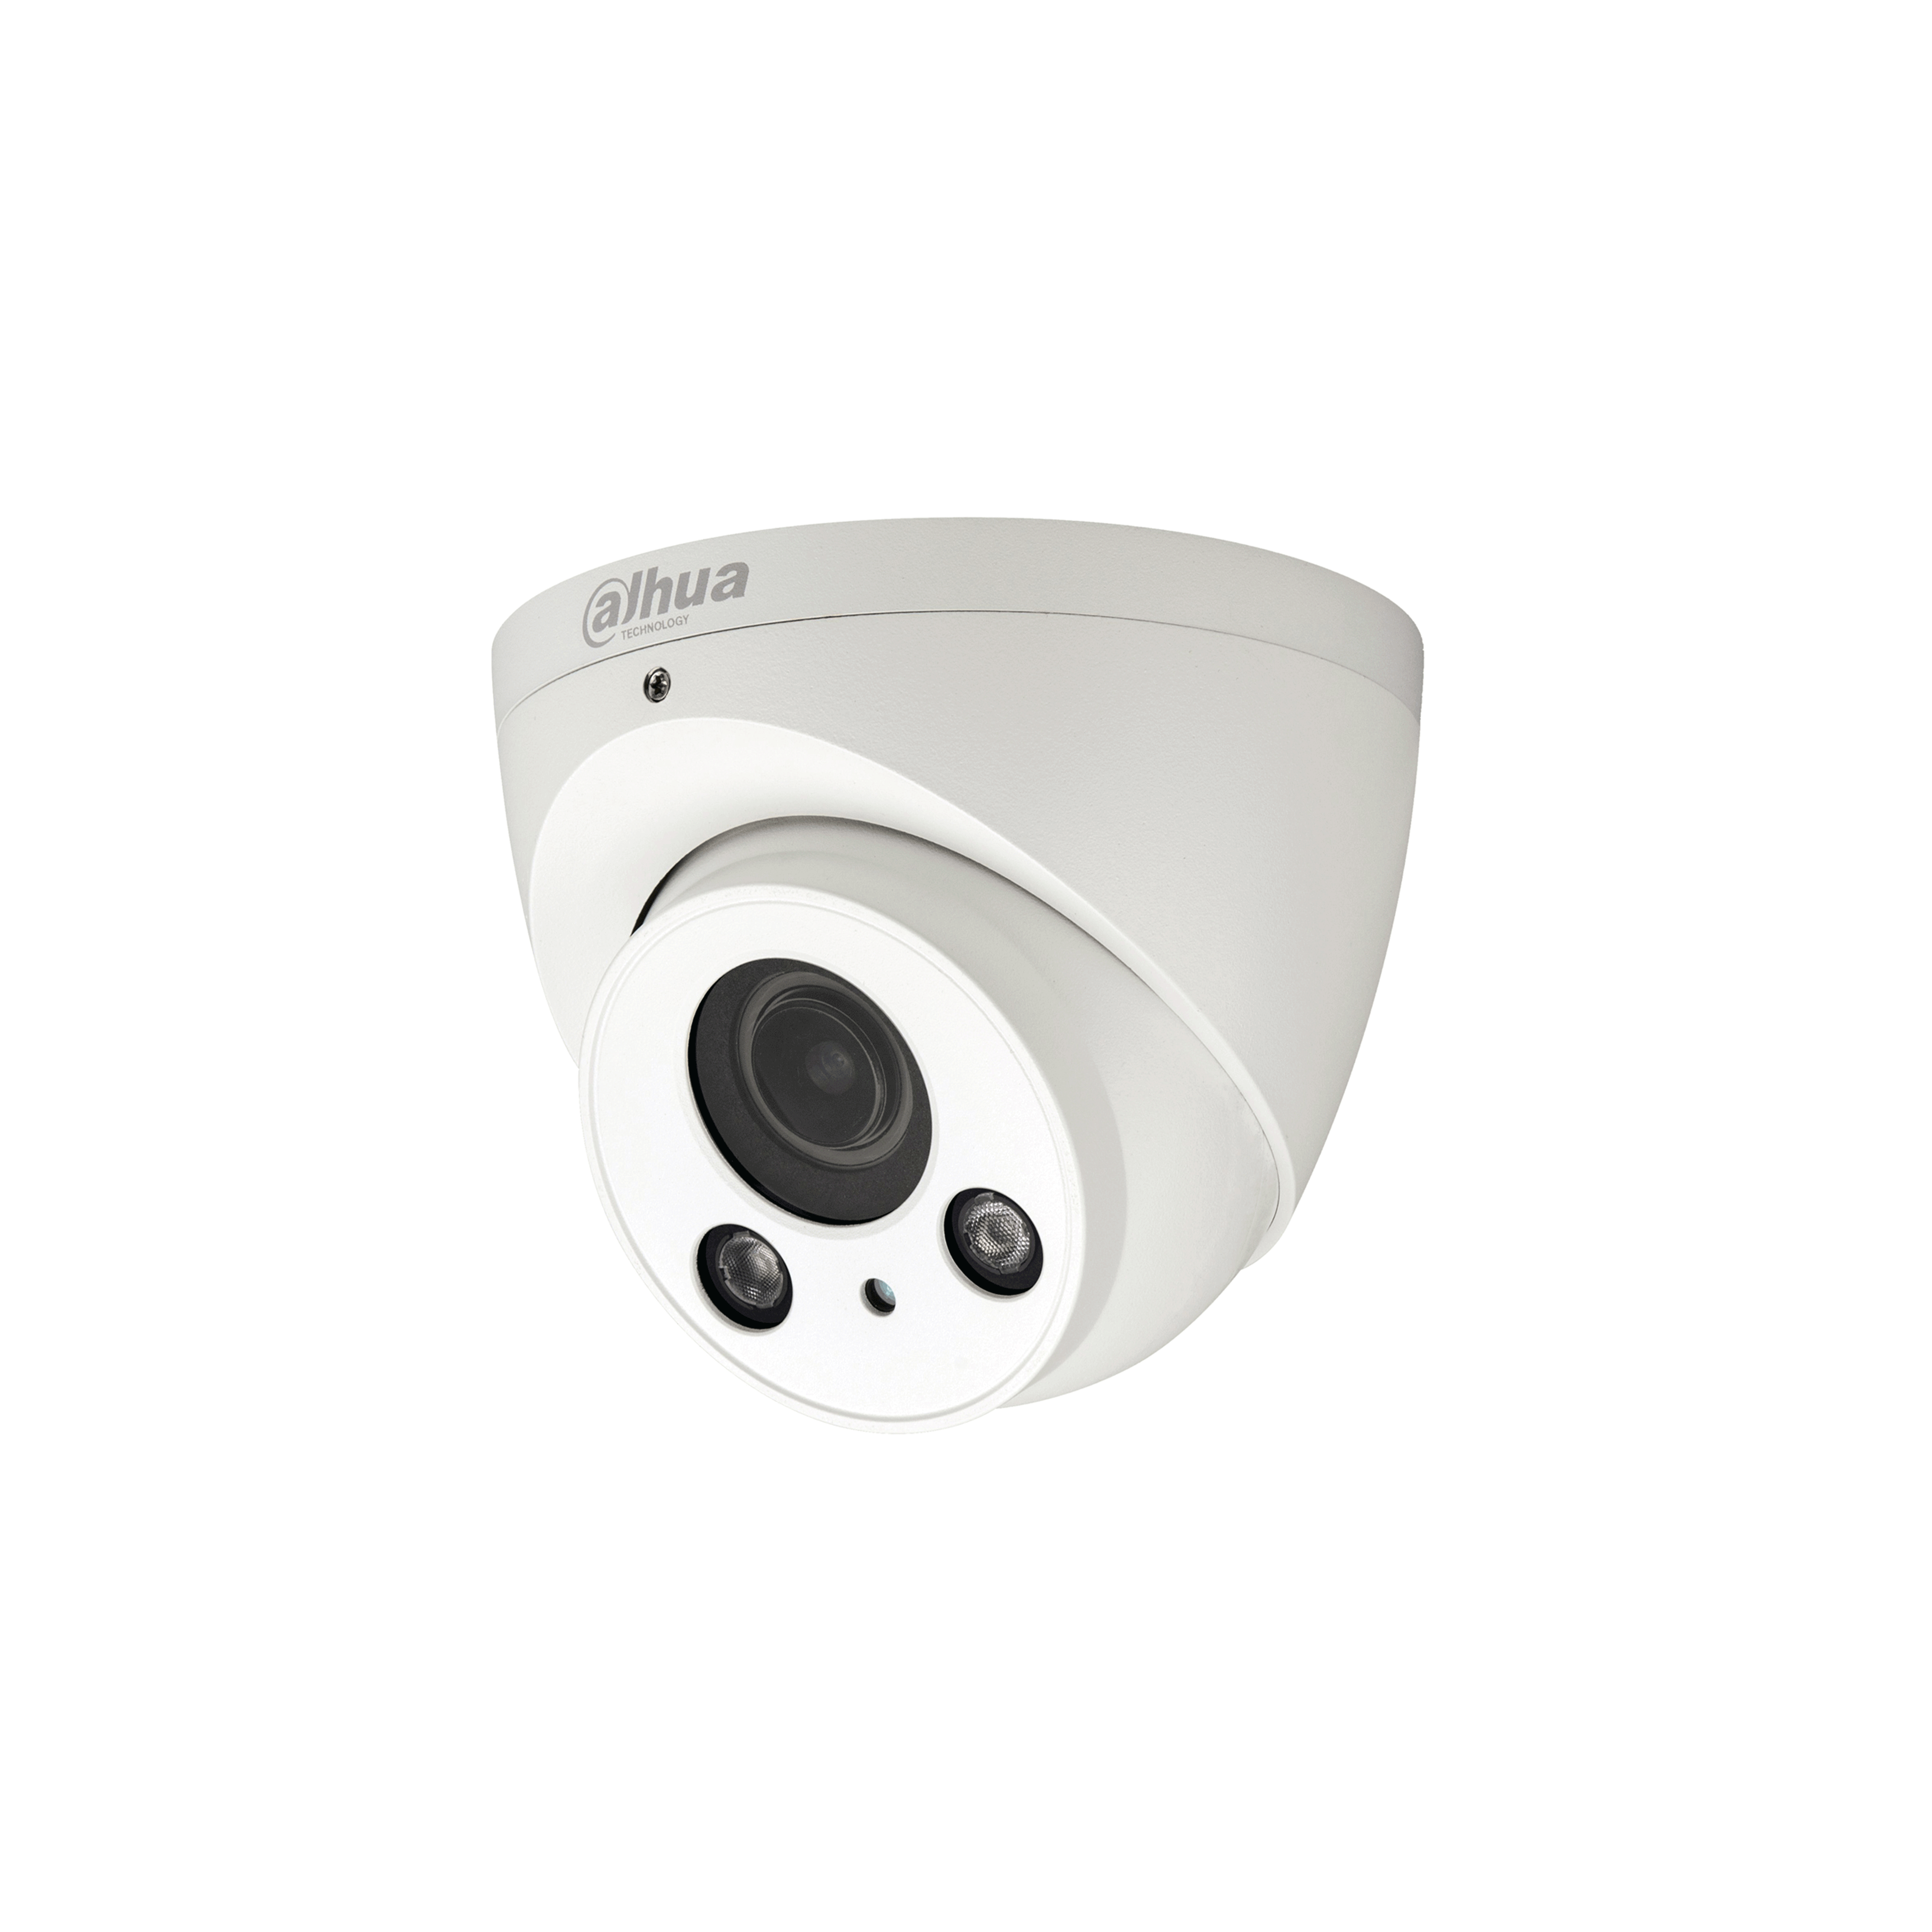 2.1Megapixel 1080P Water-proof WDR IR HDCVI Dome Camera (CLONE)